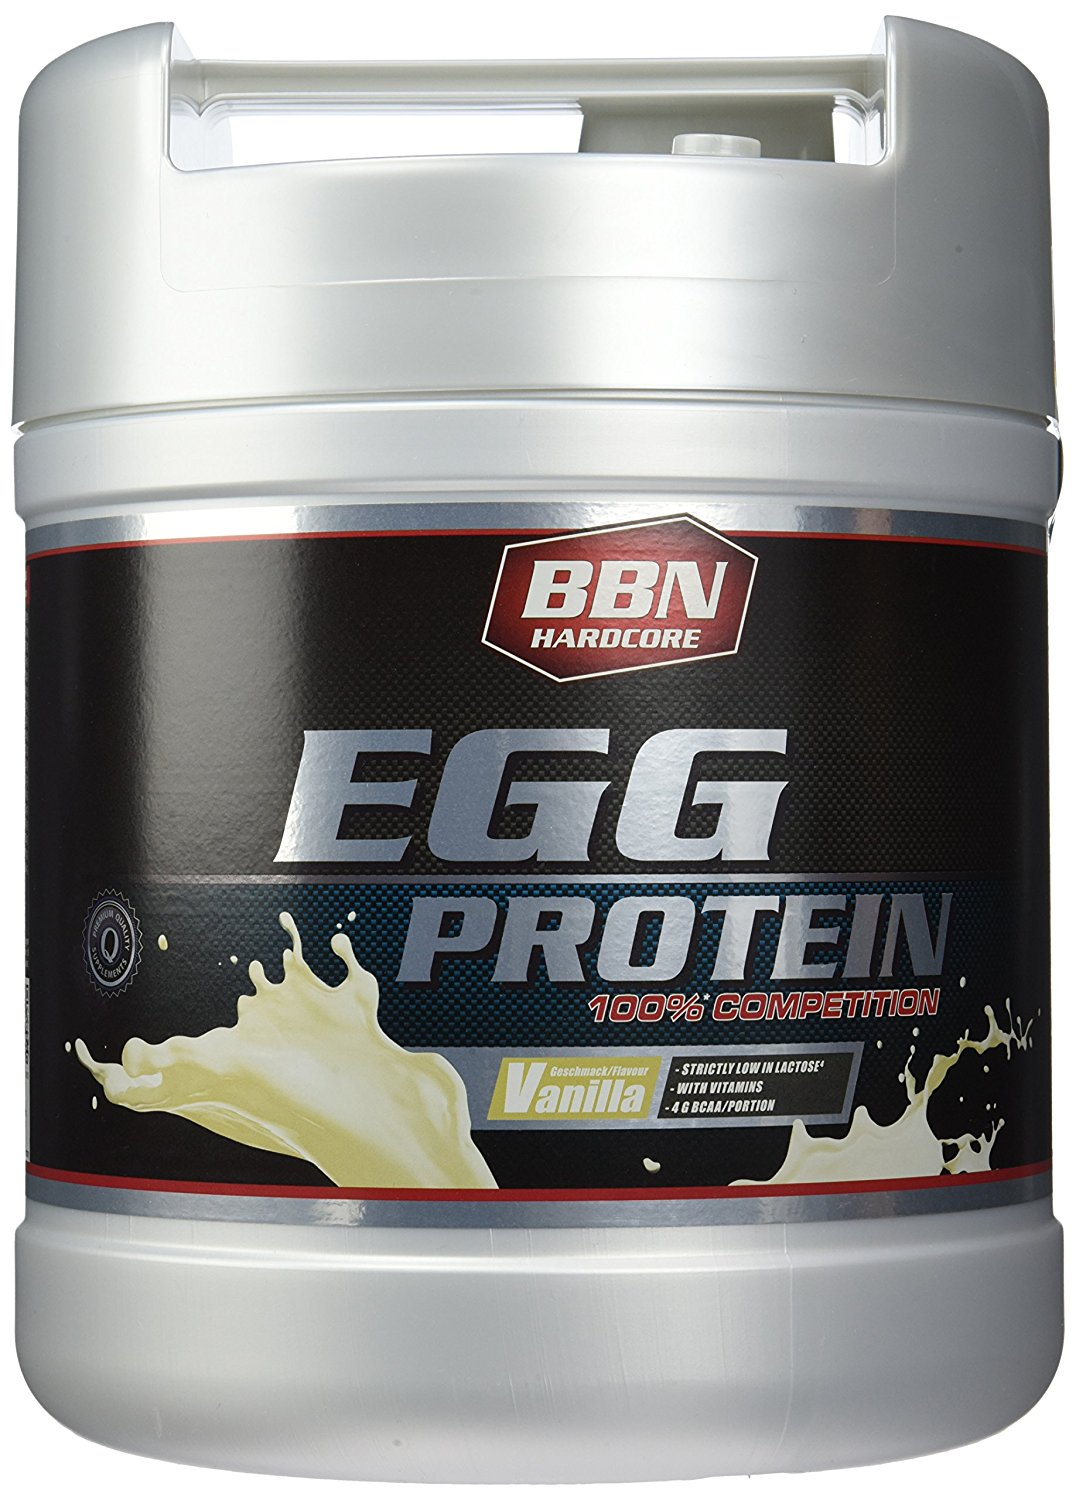 Egg-Protein, Ei-Protein, Supplement